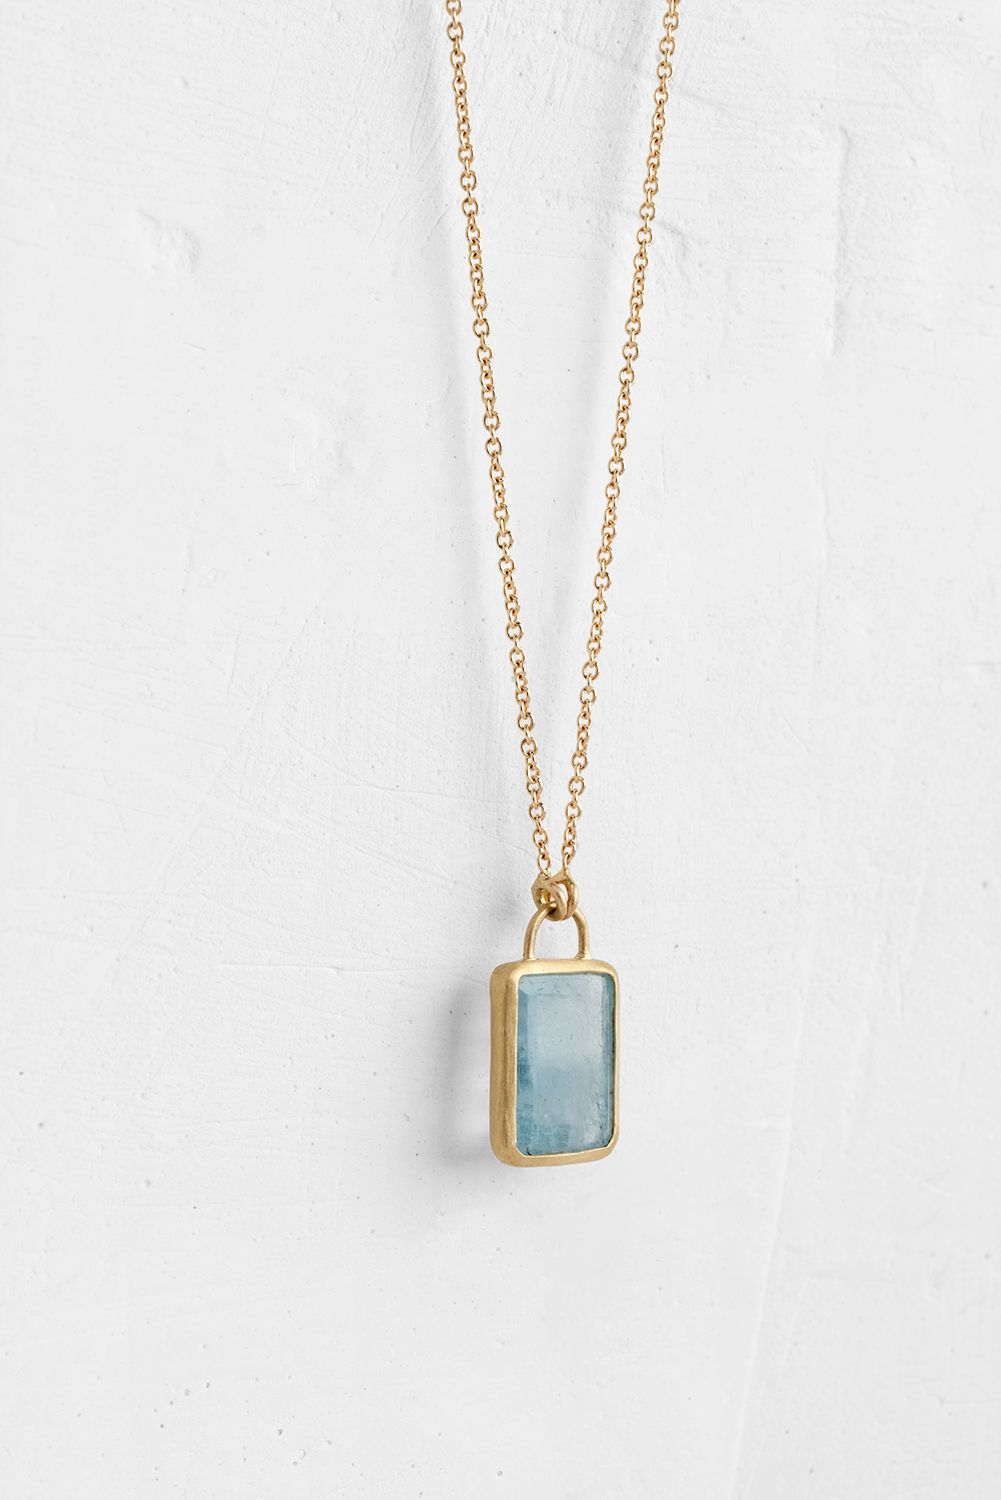 Delicate Opal and Brass Rectangle Necklace Pendant